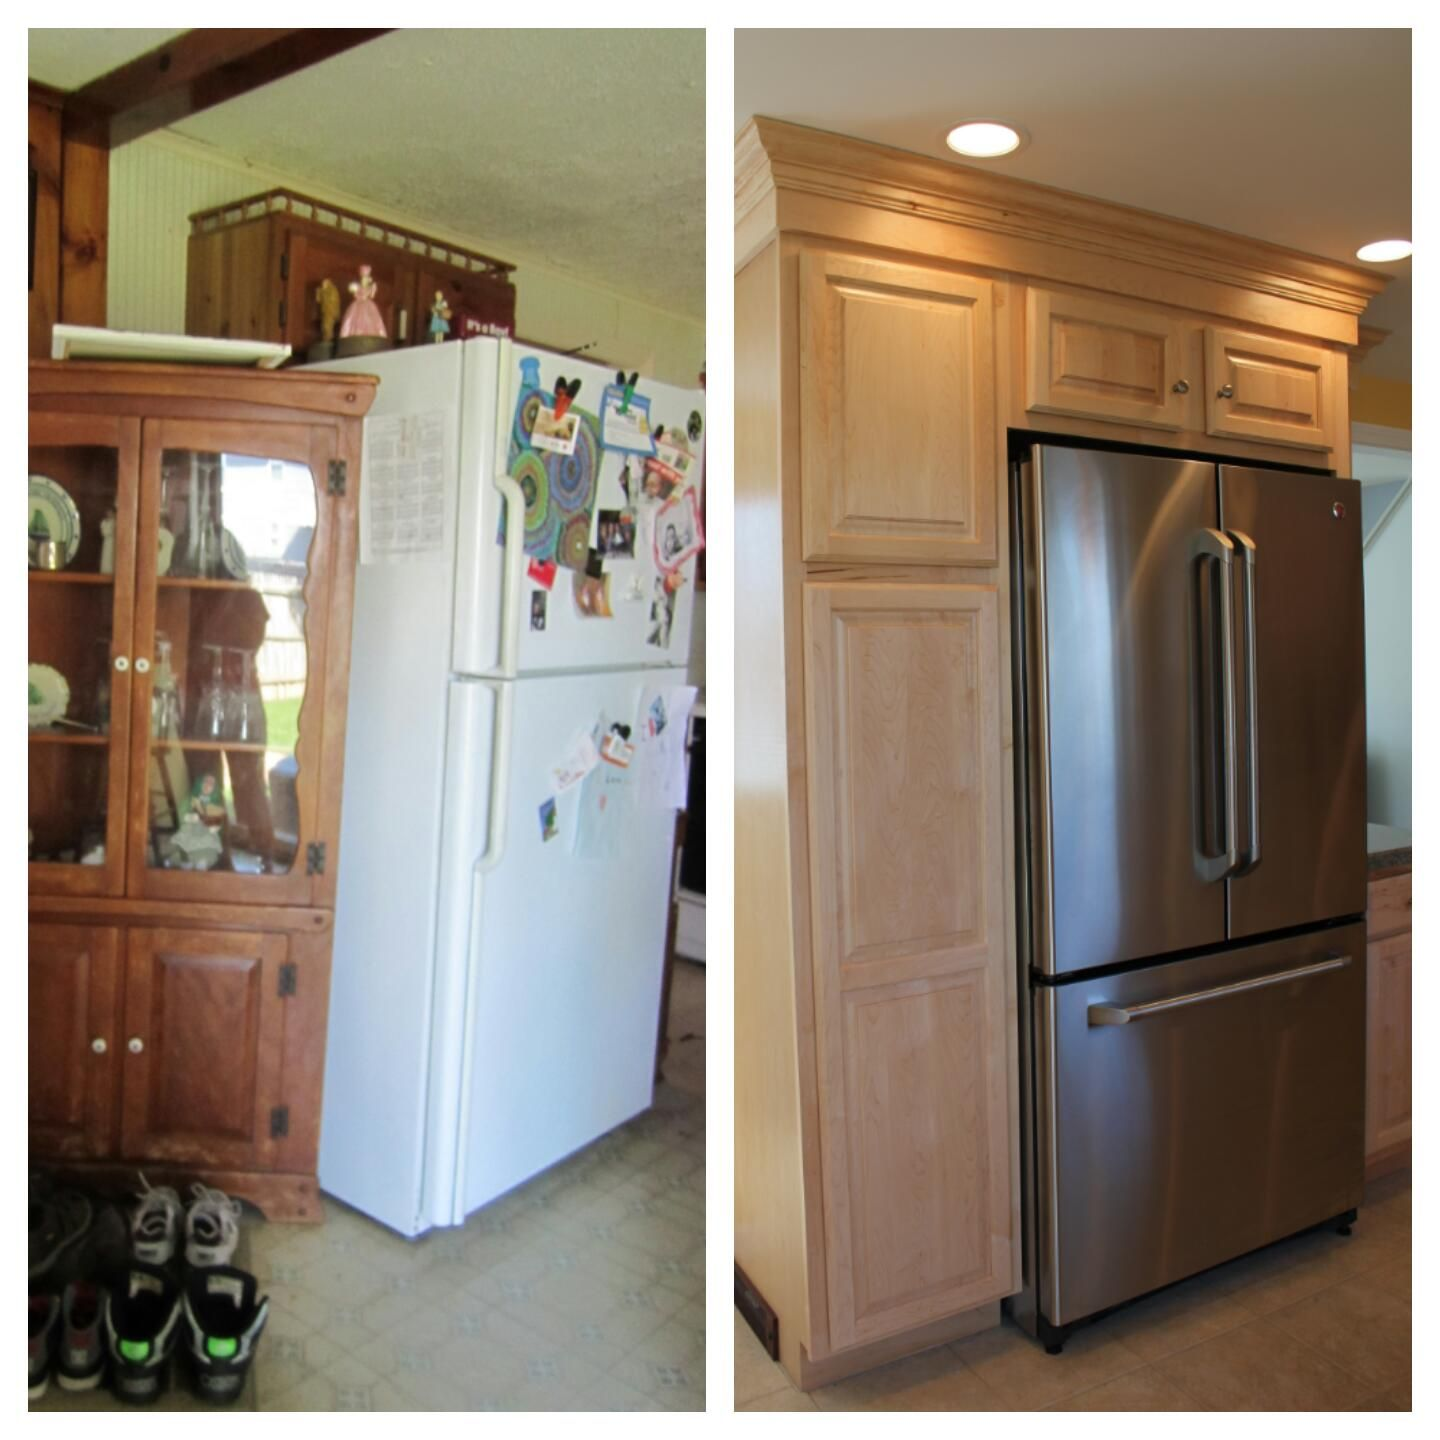 By Adding The Cabinets Around The Refrigerator Added More Storage Space And Made Cleaner Lines Interior Design Kitchen Small Interior Design Kitchen Kitchen